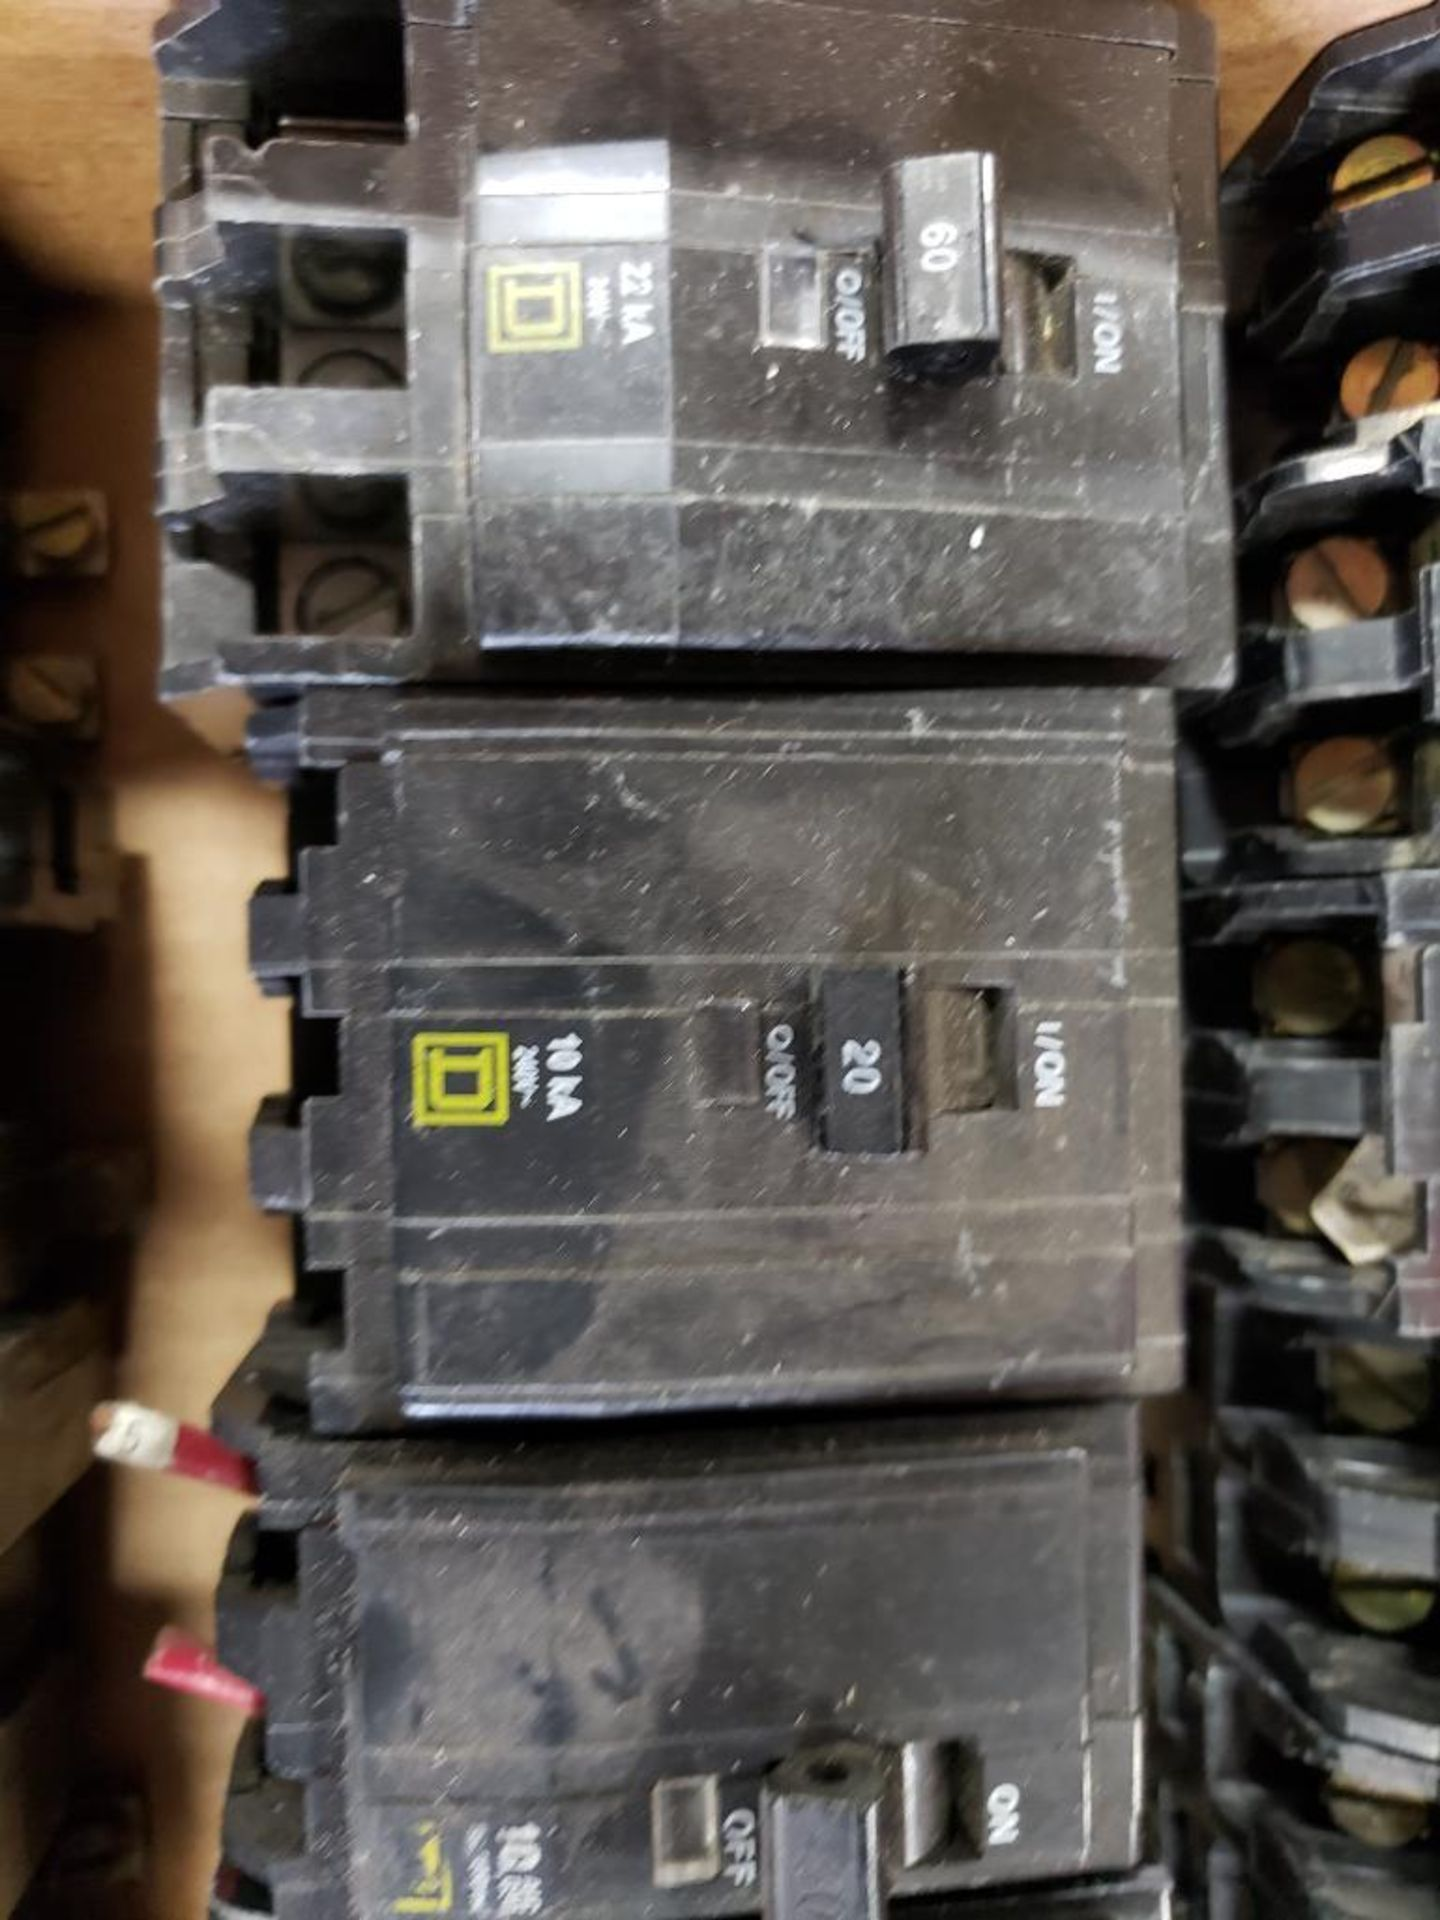 Assorted Square-D Breakers. - Image 5 of 9